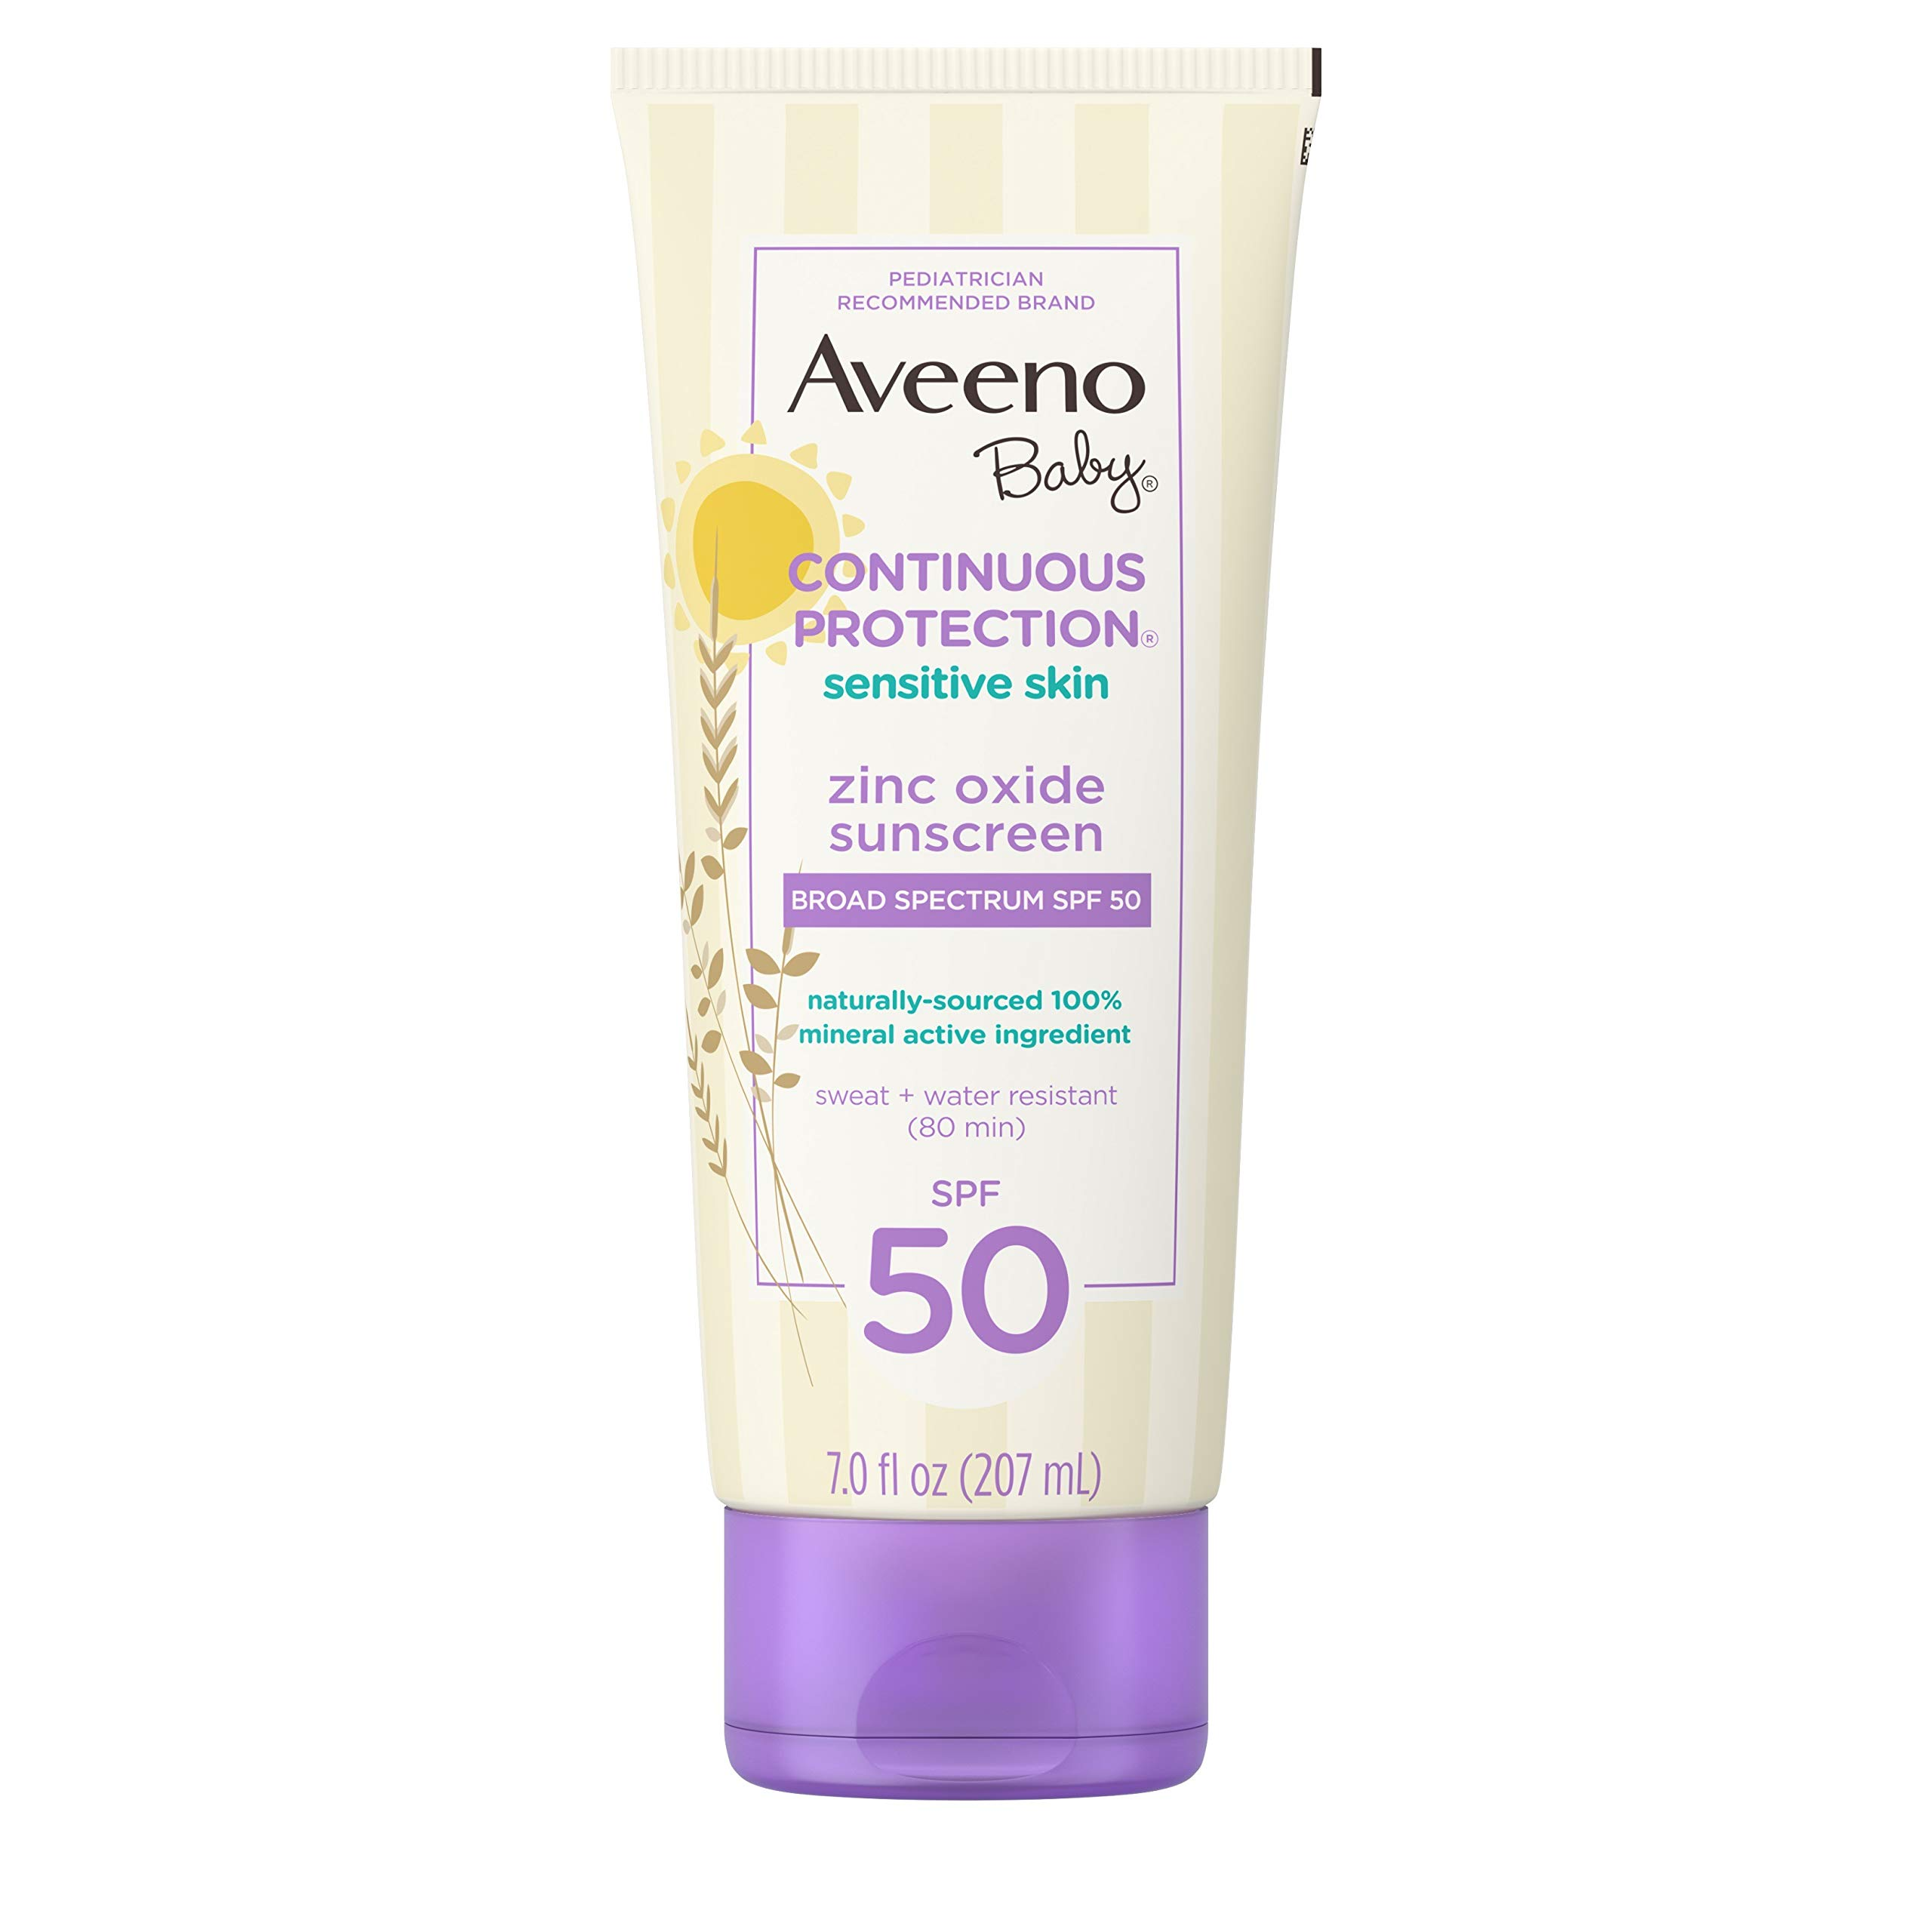 Aveeno Baby Continuous Protection Zinc Oxide Mineral Sunscreen Lotion for Sensitive Skin, Broad Spectrum SPF 50, Tear-Free, Sweat- & Water-Resistant, Paraben-Free, Non-Greasy, 7 fl. oz